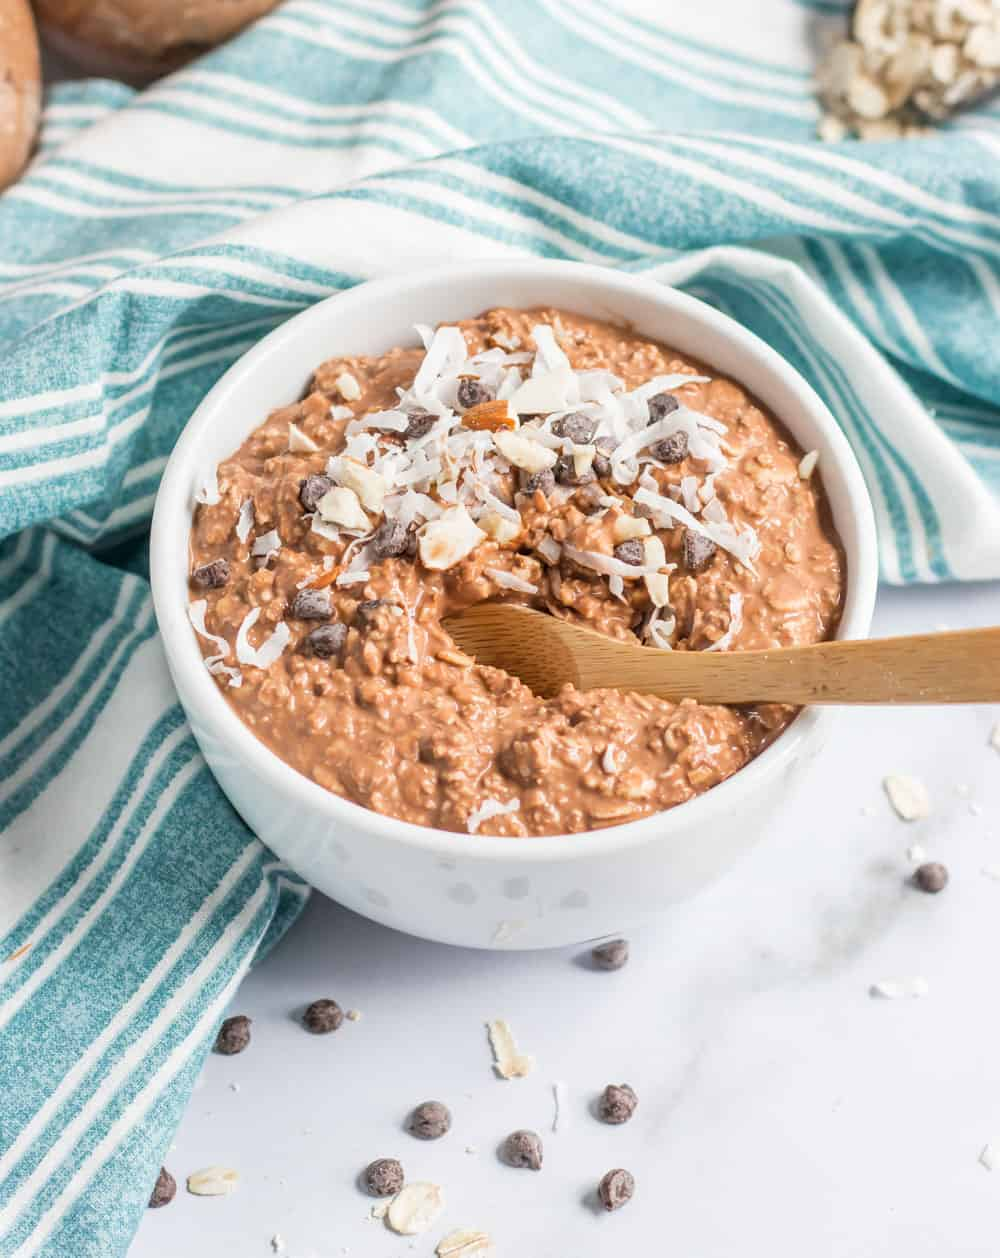 Spoon in bowl of oatmeal with chocolate chips.